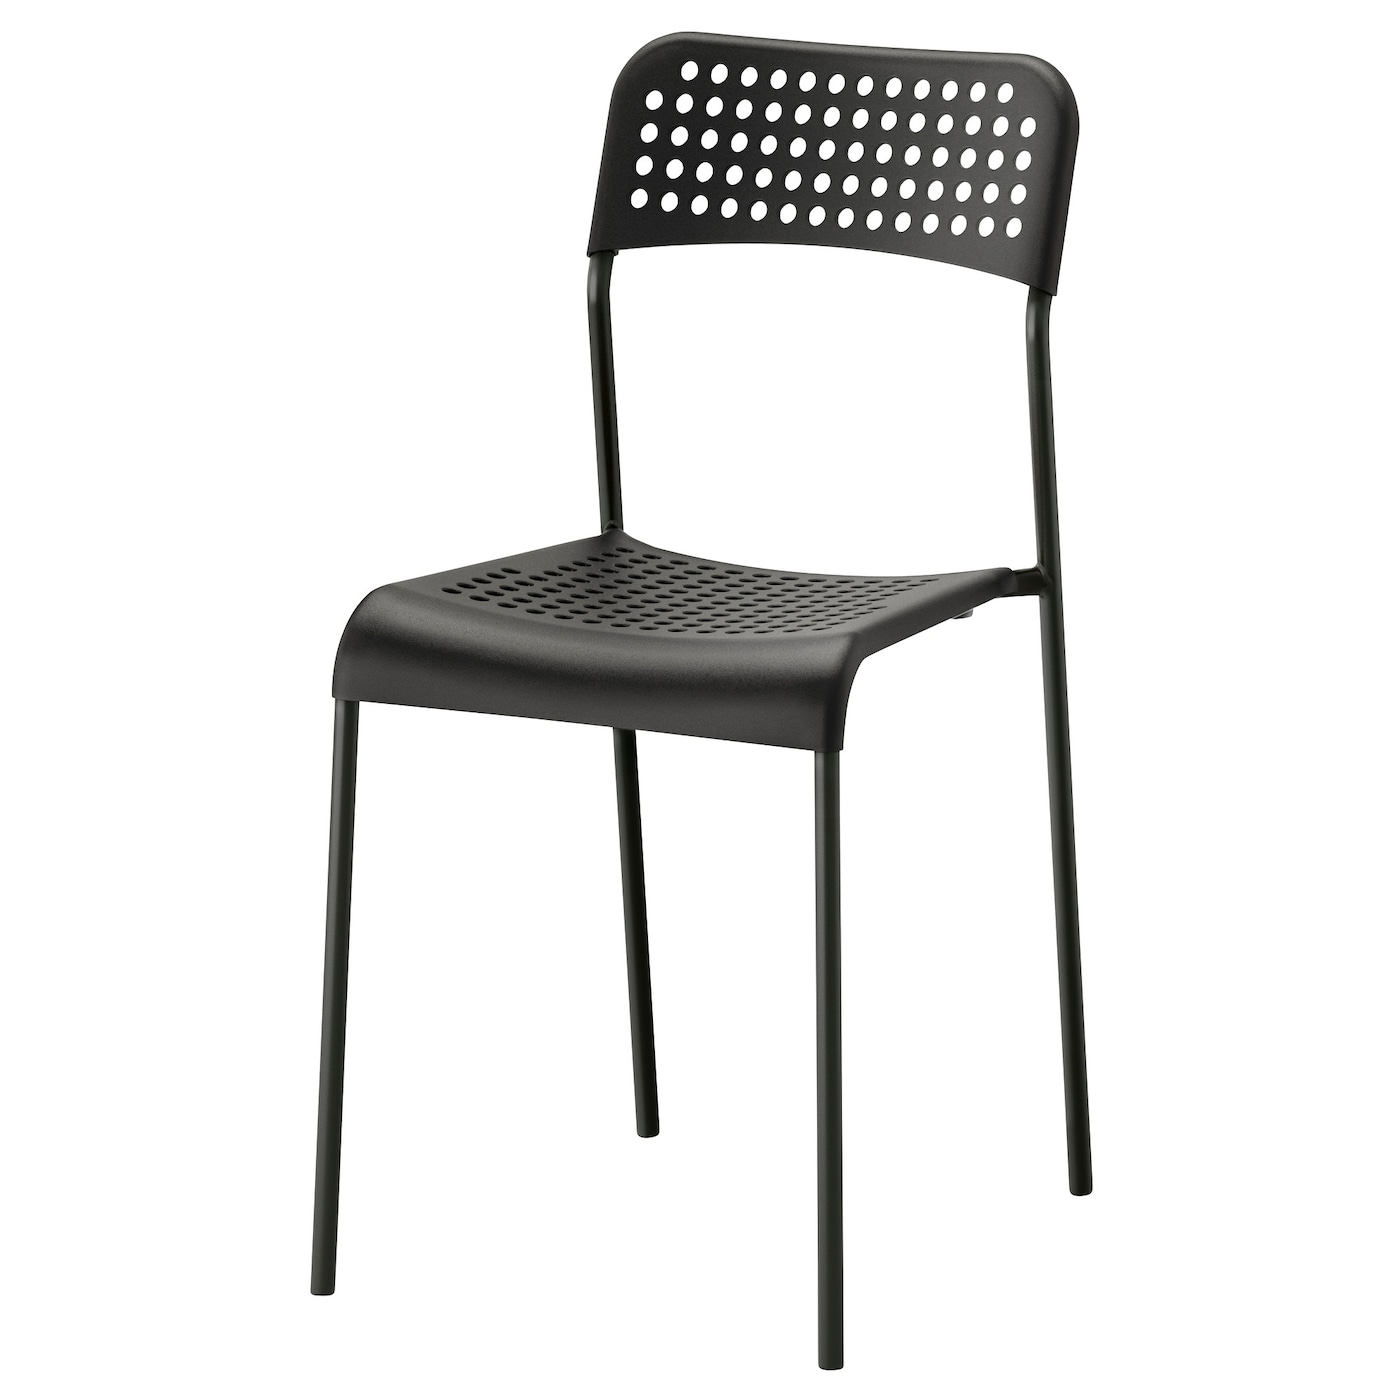 IKEA ADDE chair You can stack the chairs, so they take less space when you're not using them.